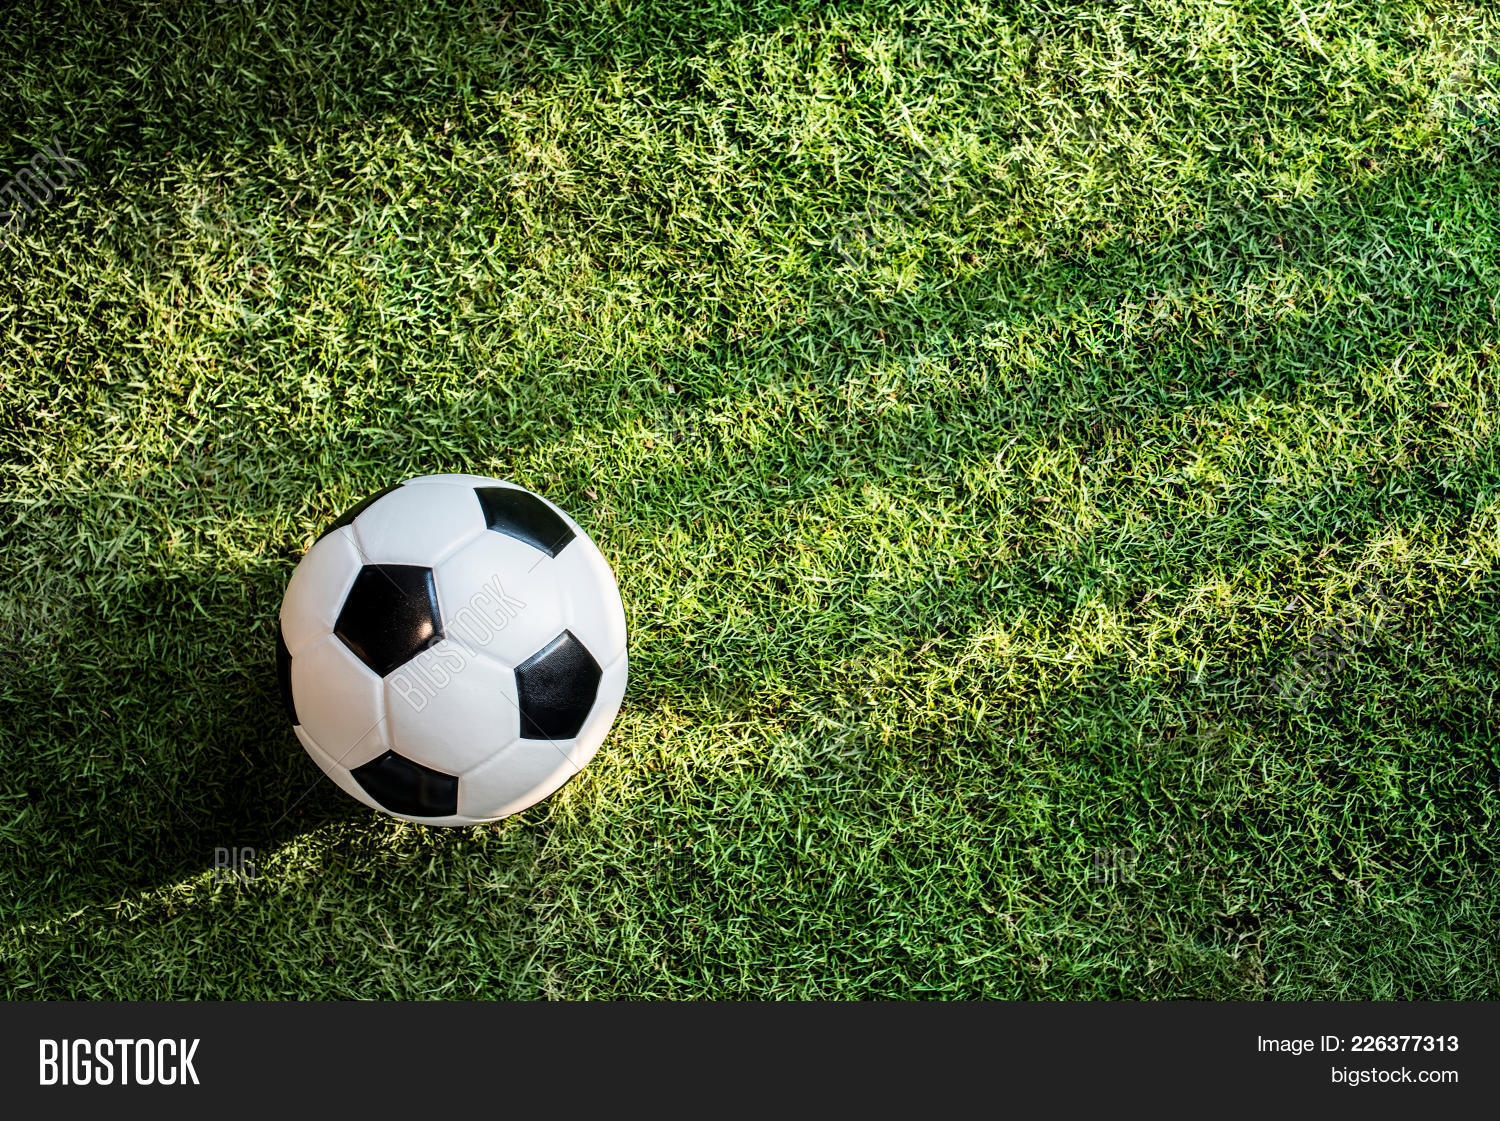 Football On Ground Powerpoint Template Football On Ground